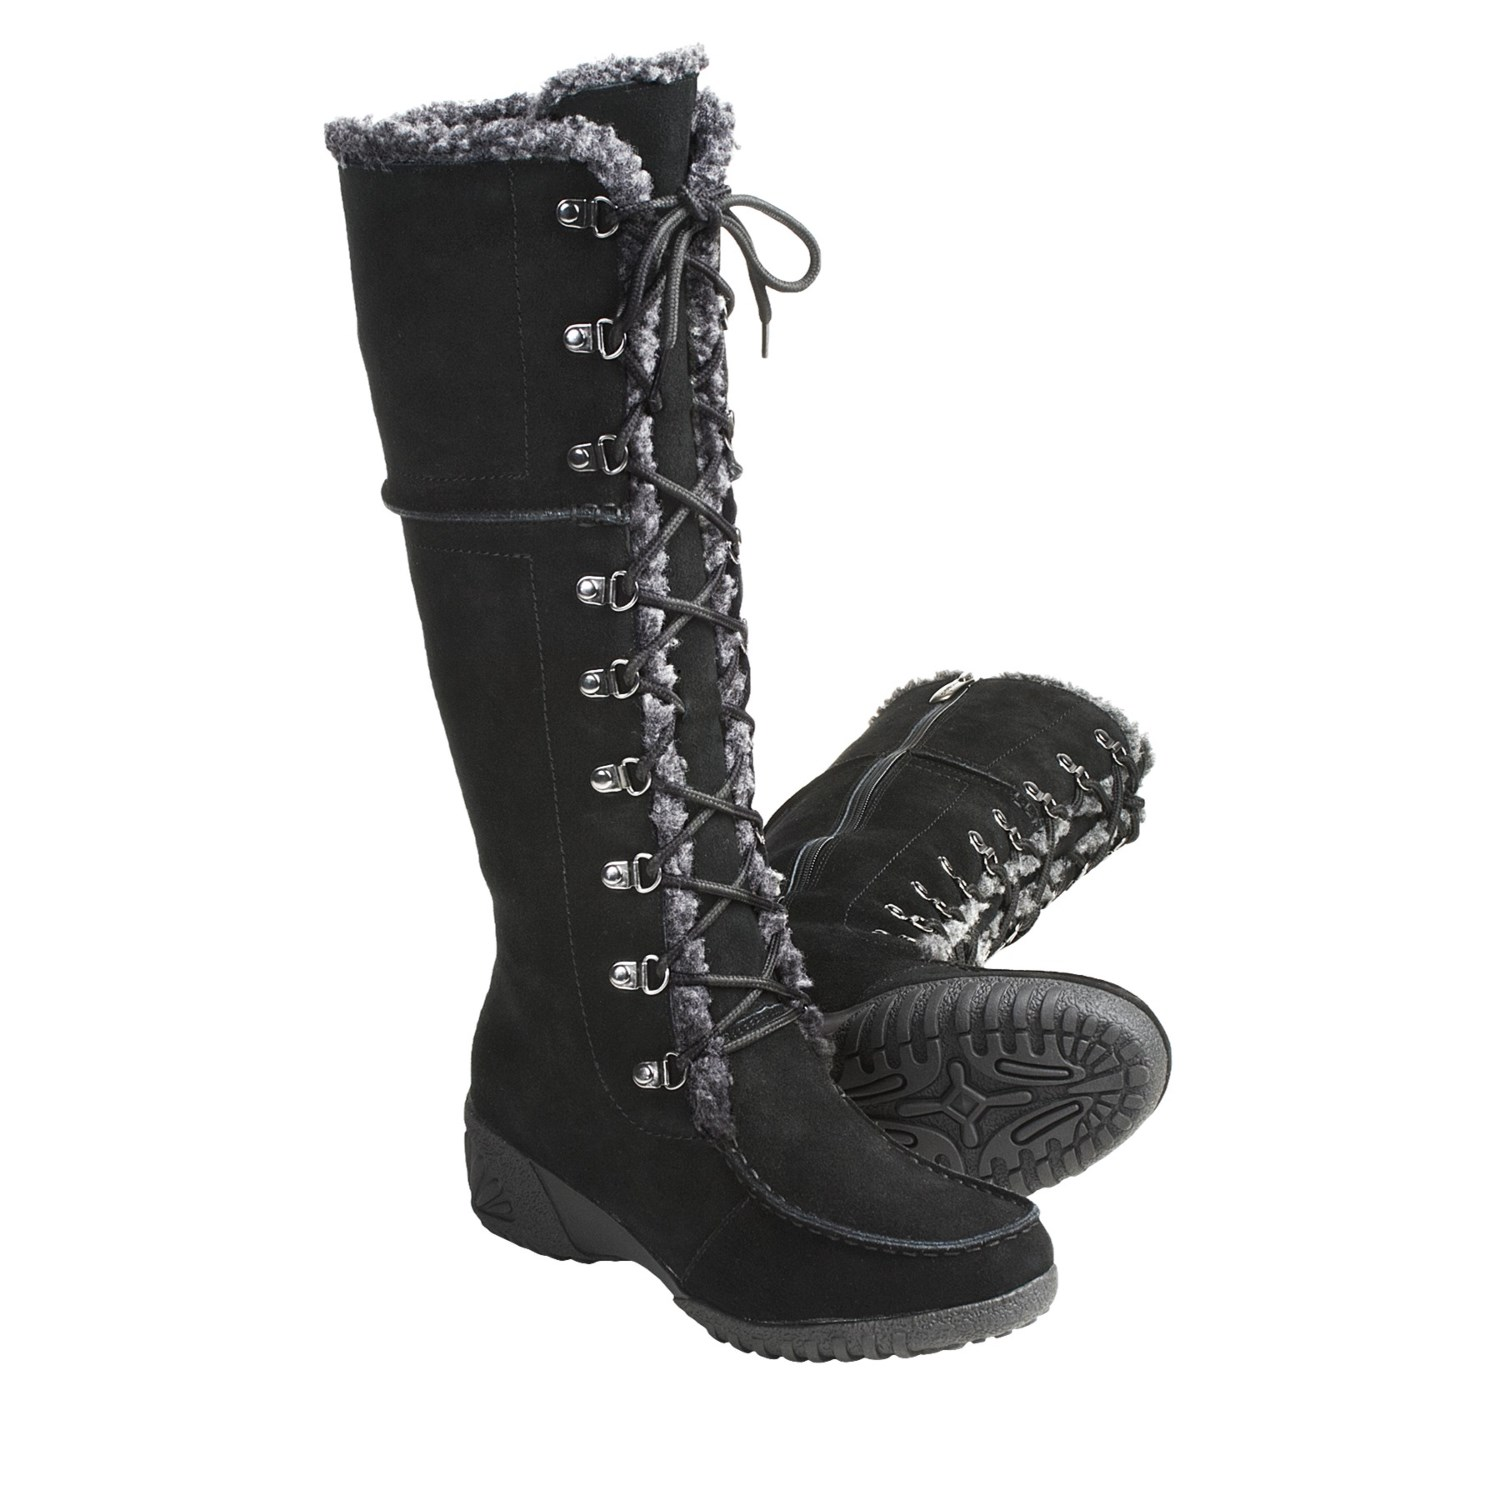 Khombu Saturn Lace Winter Boots (For Women) 3692T - Save 35%